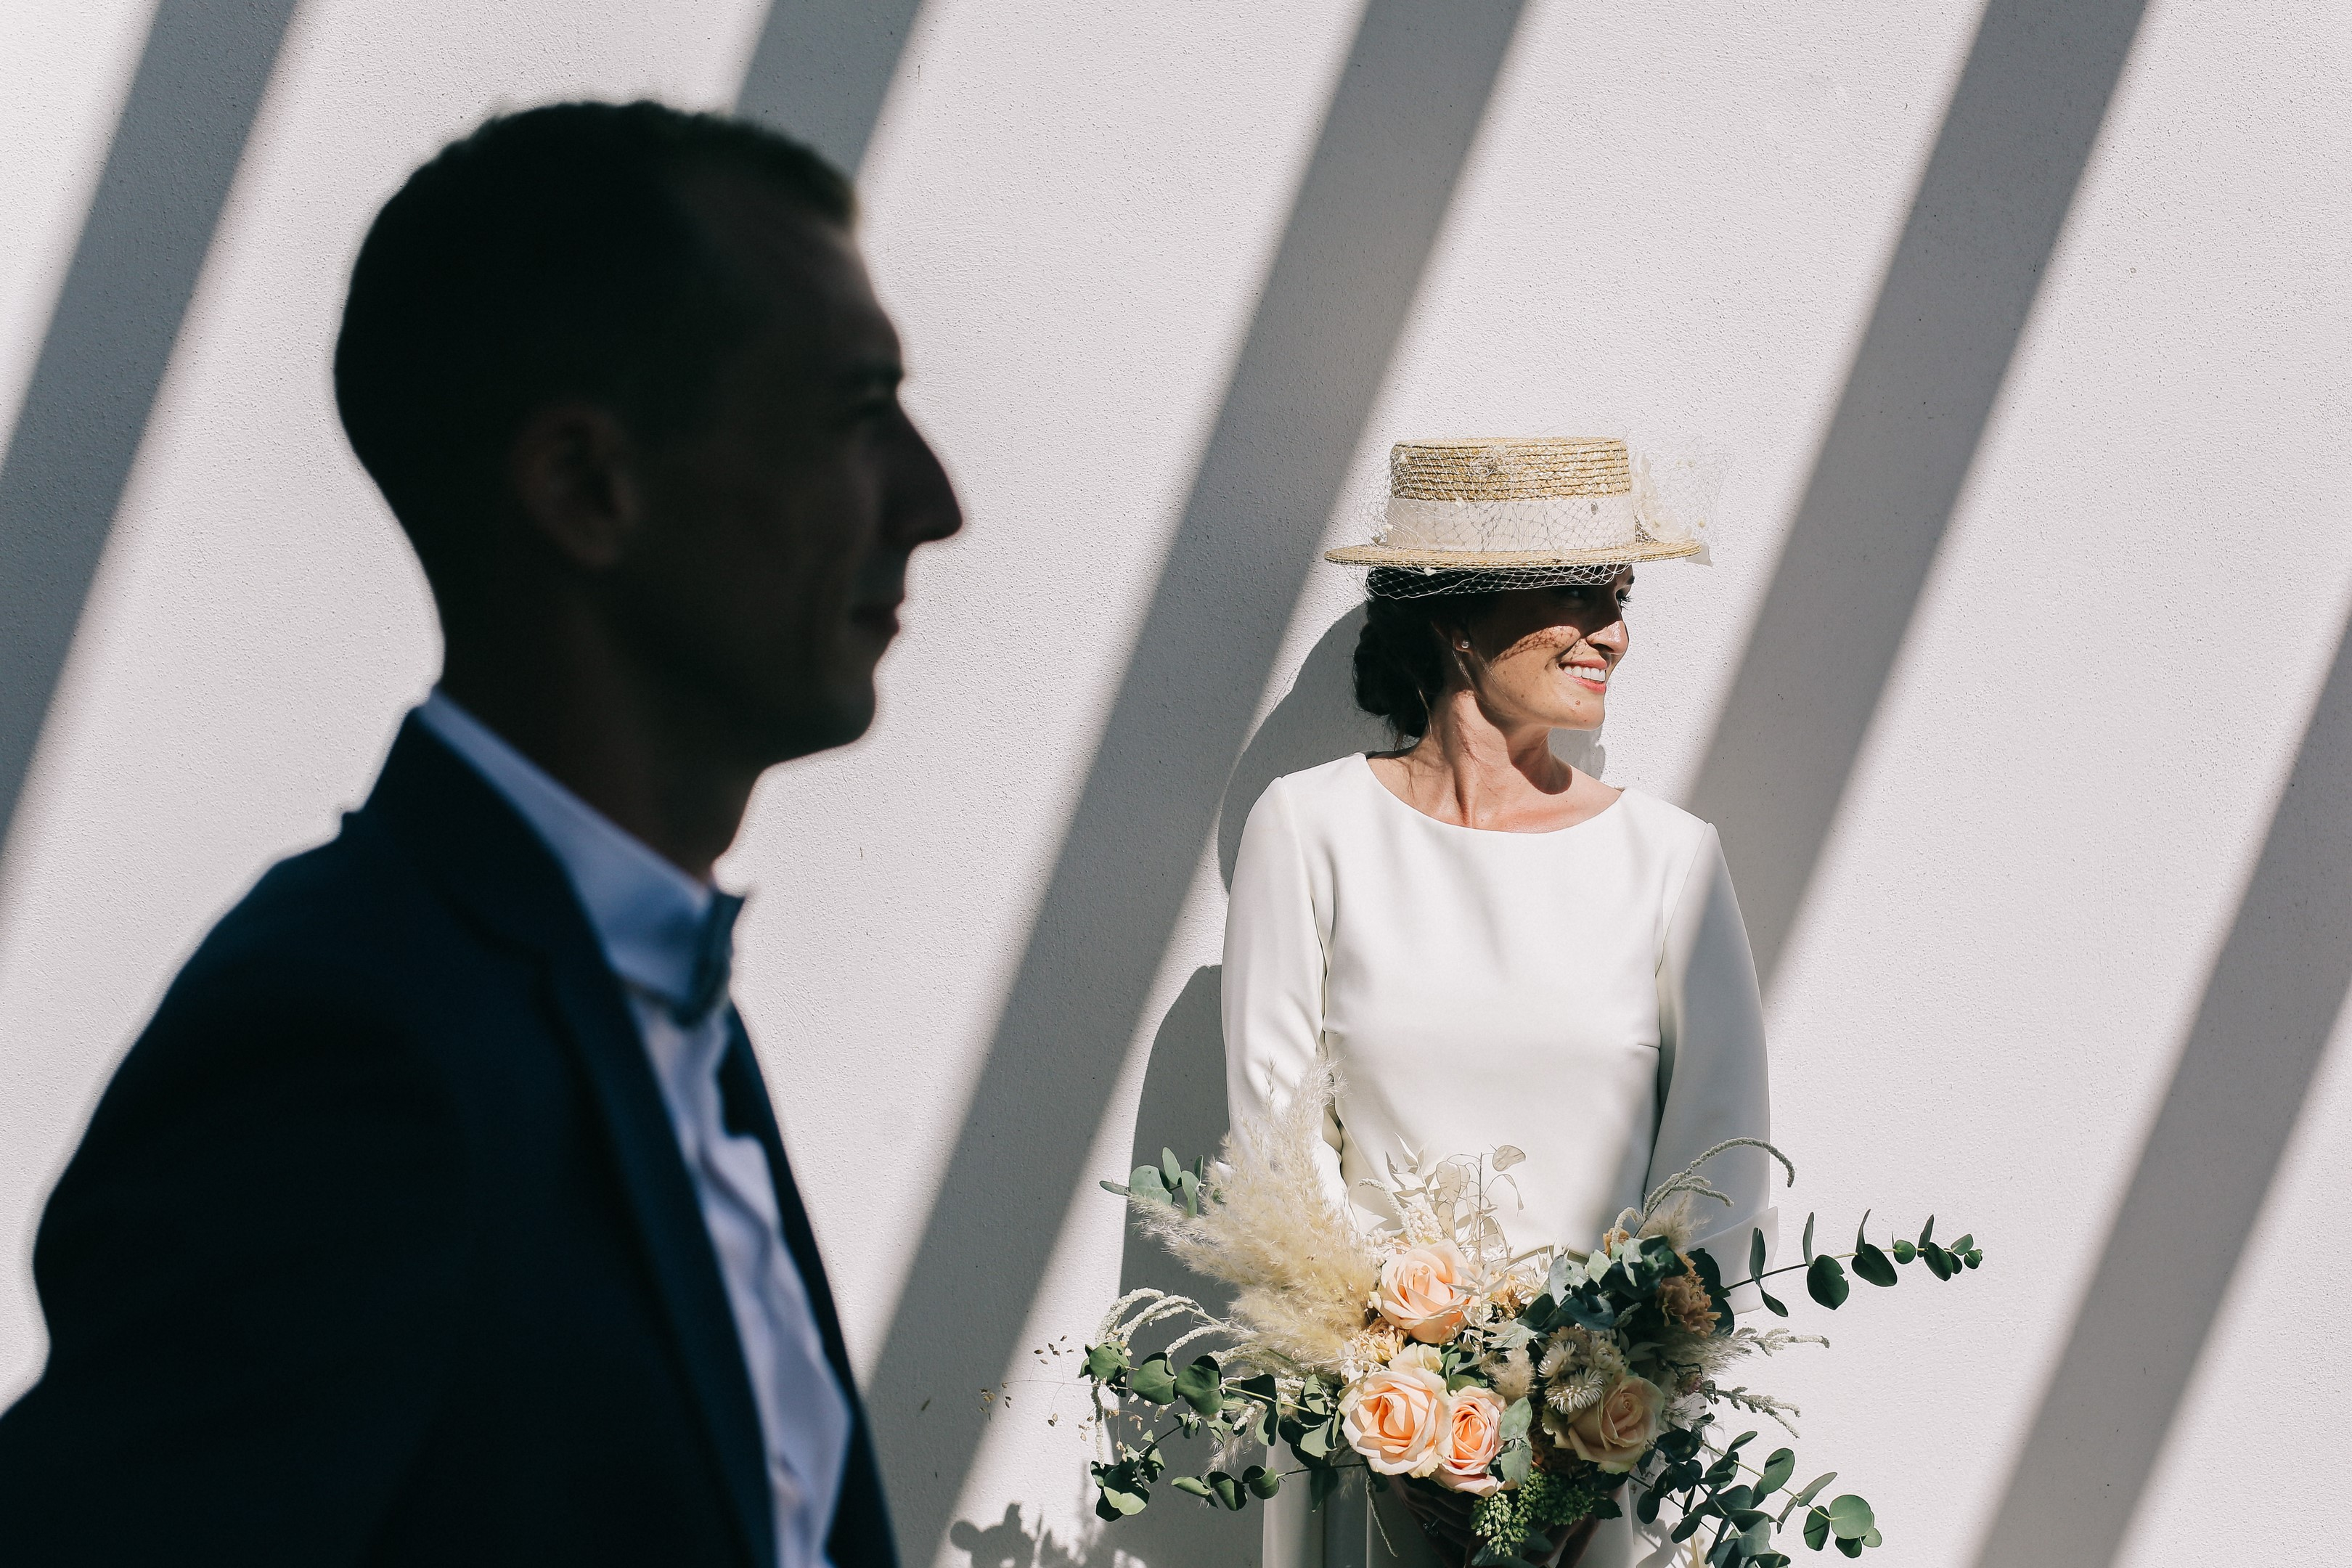 Bride in straw hat against shadowed ball - photo by Amandine Ropars